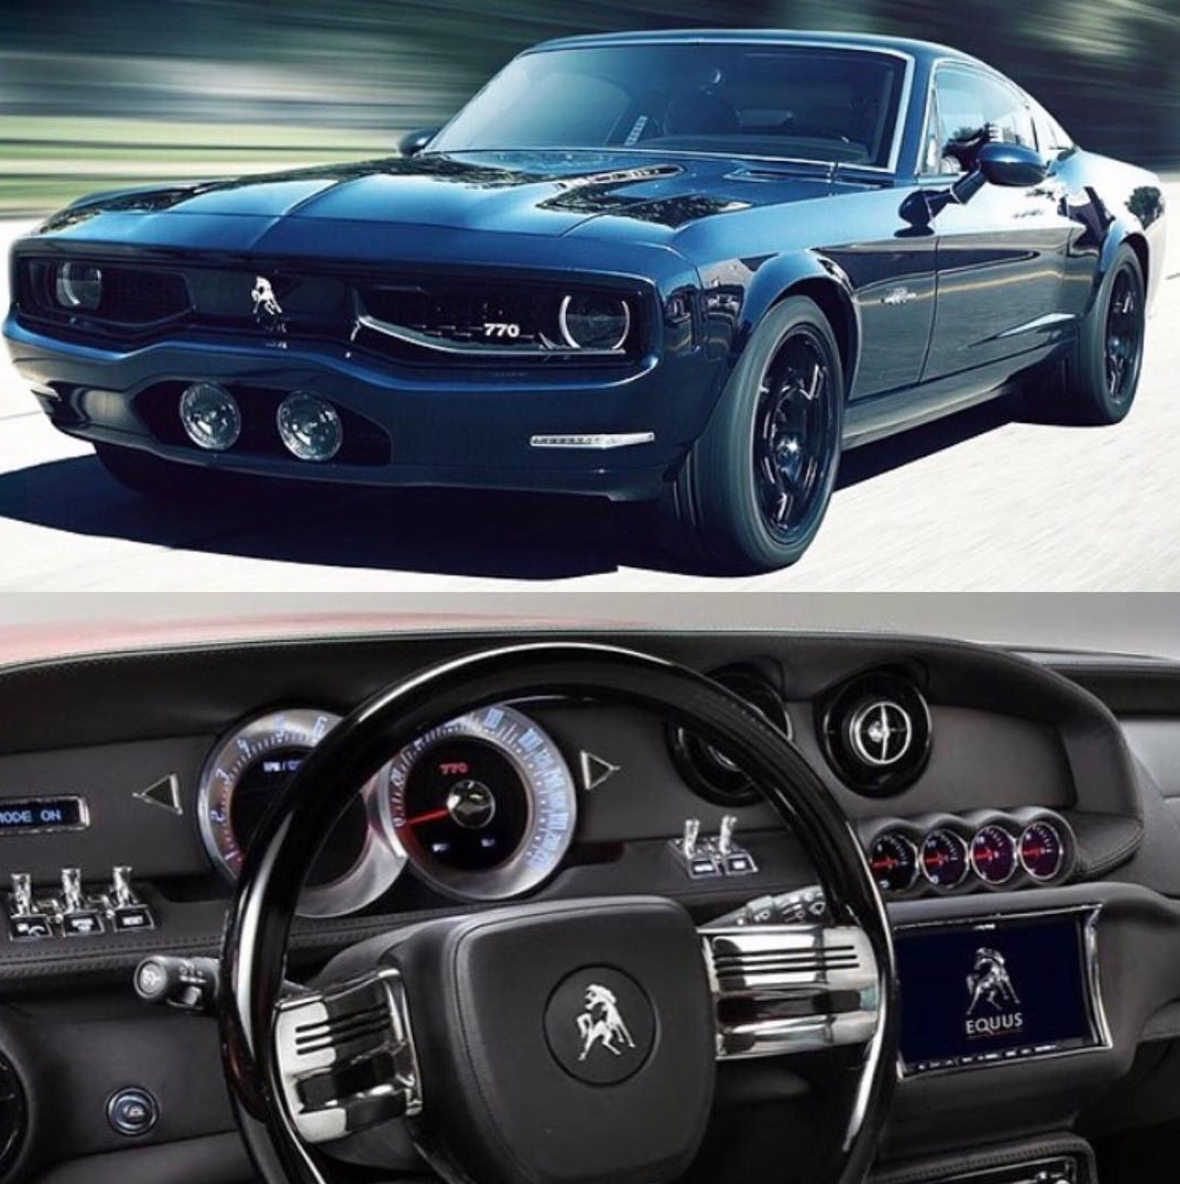 Equss Bass 770: Our #MotivationMonday Comes From This Equus Bass 770! We